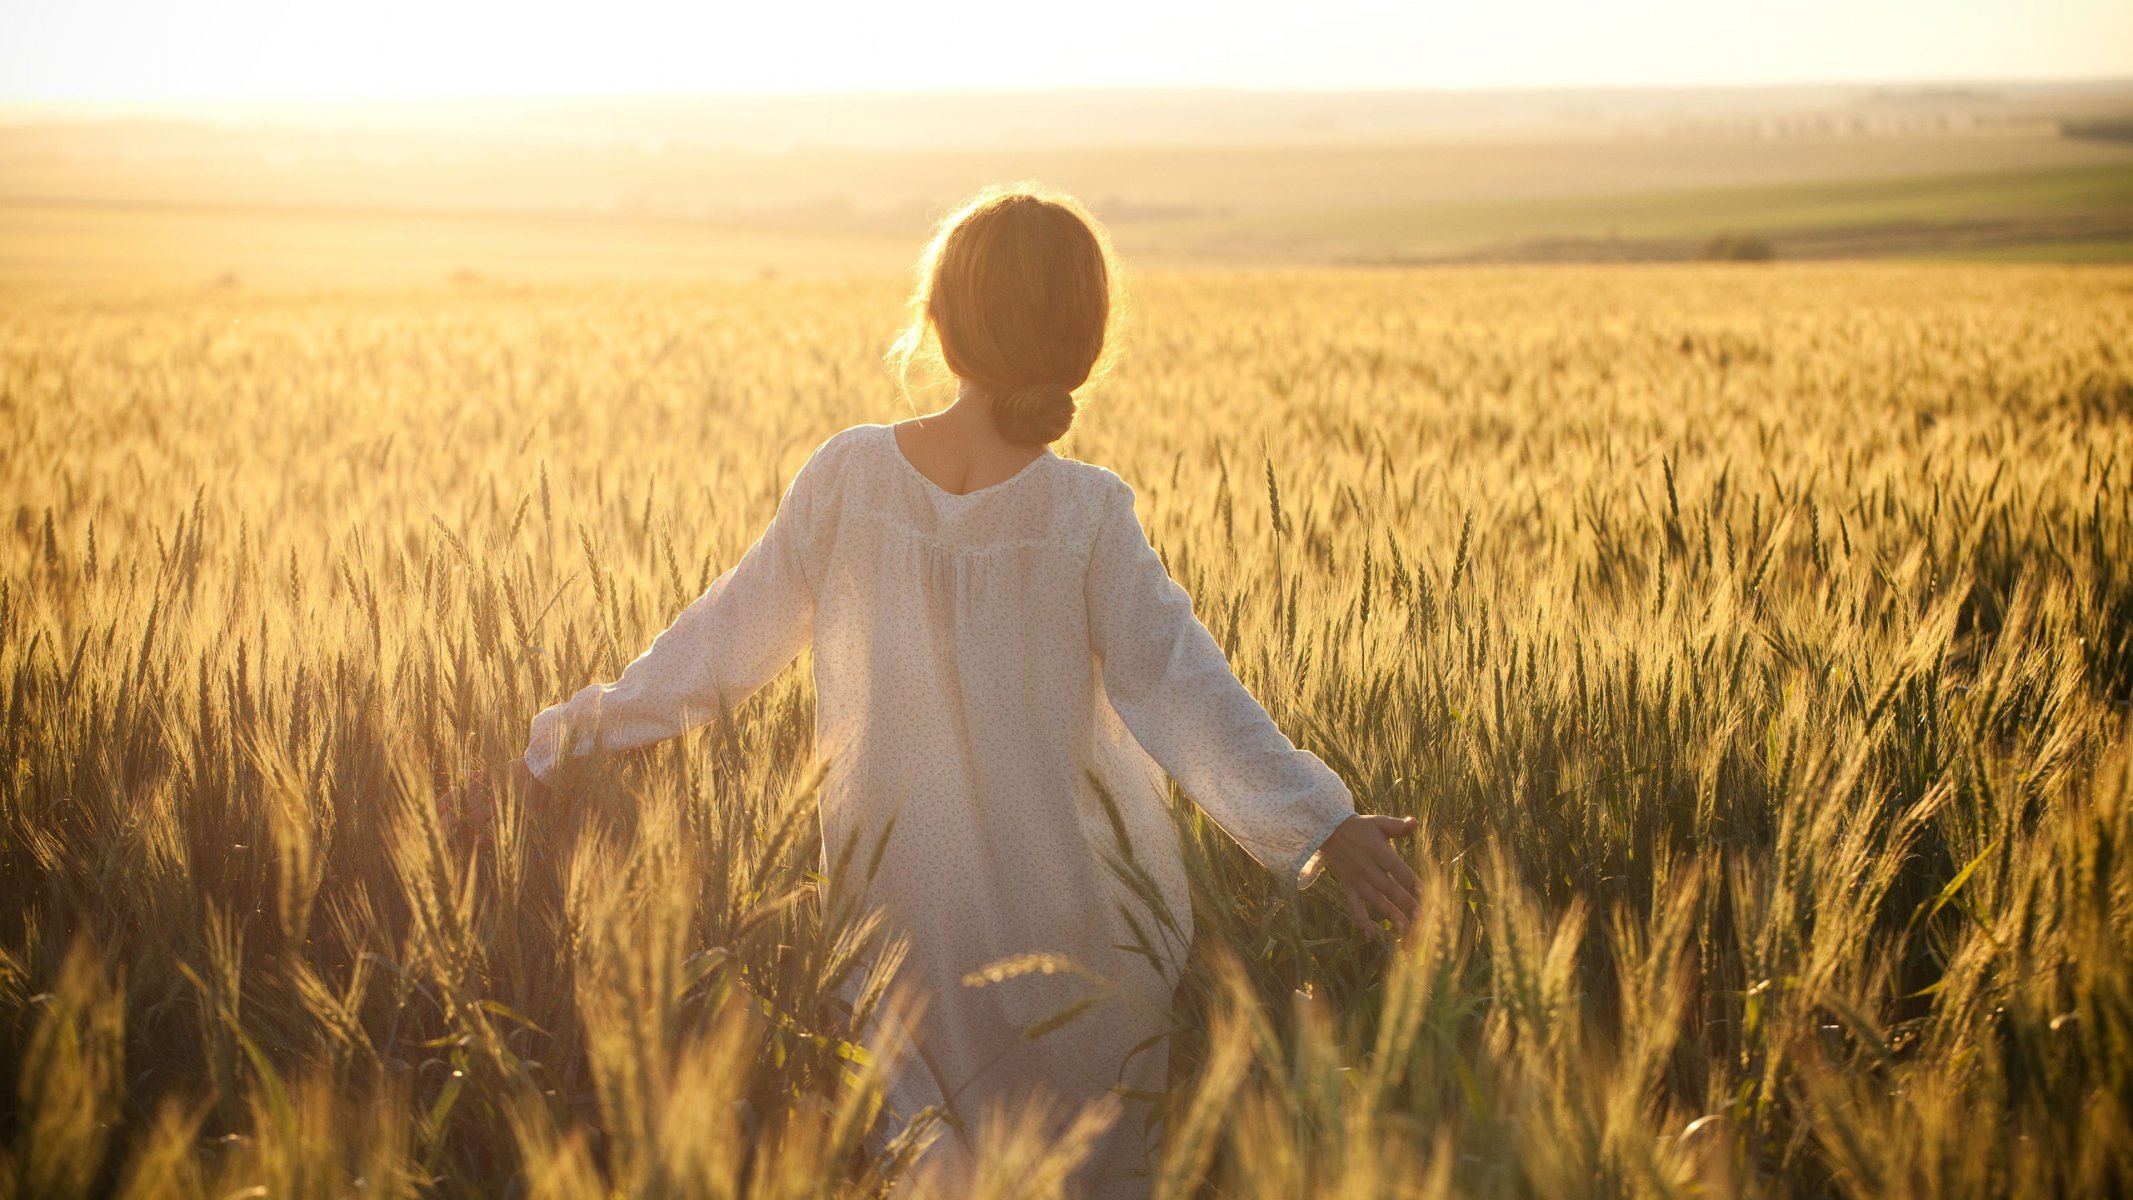 Girl Girls A Woman Women The Field Wind Wheat Vintage Yellow Sky Dress Hair From Back Walk Freedom Happiness One Loneliness Beautiful